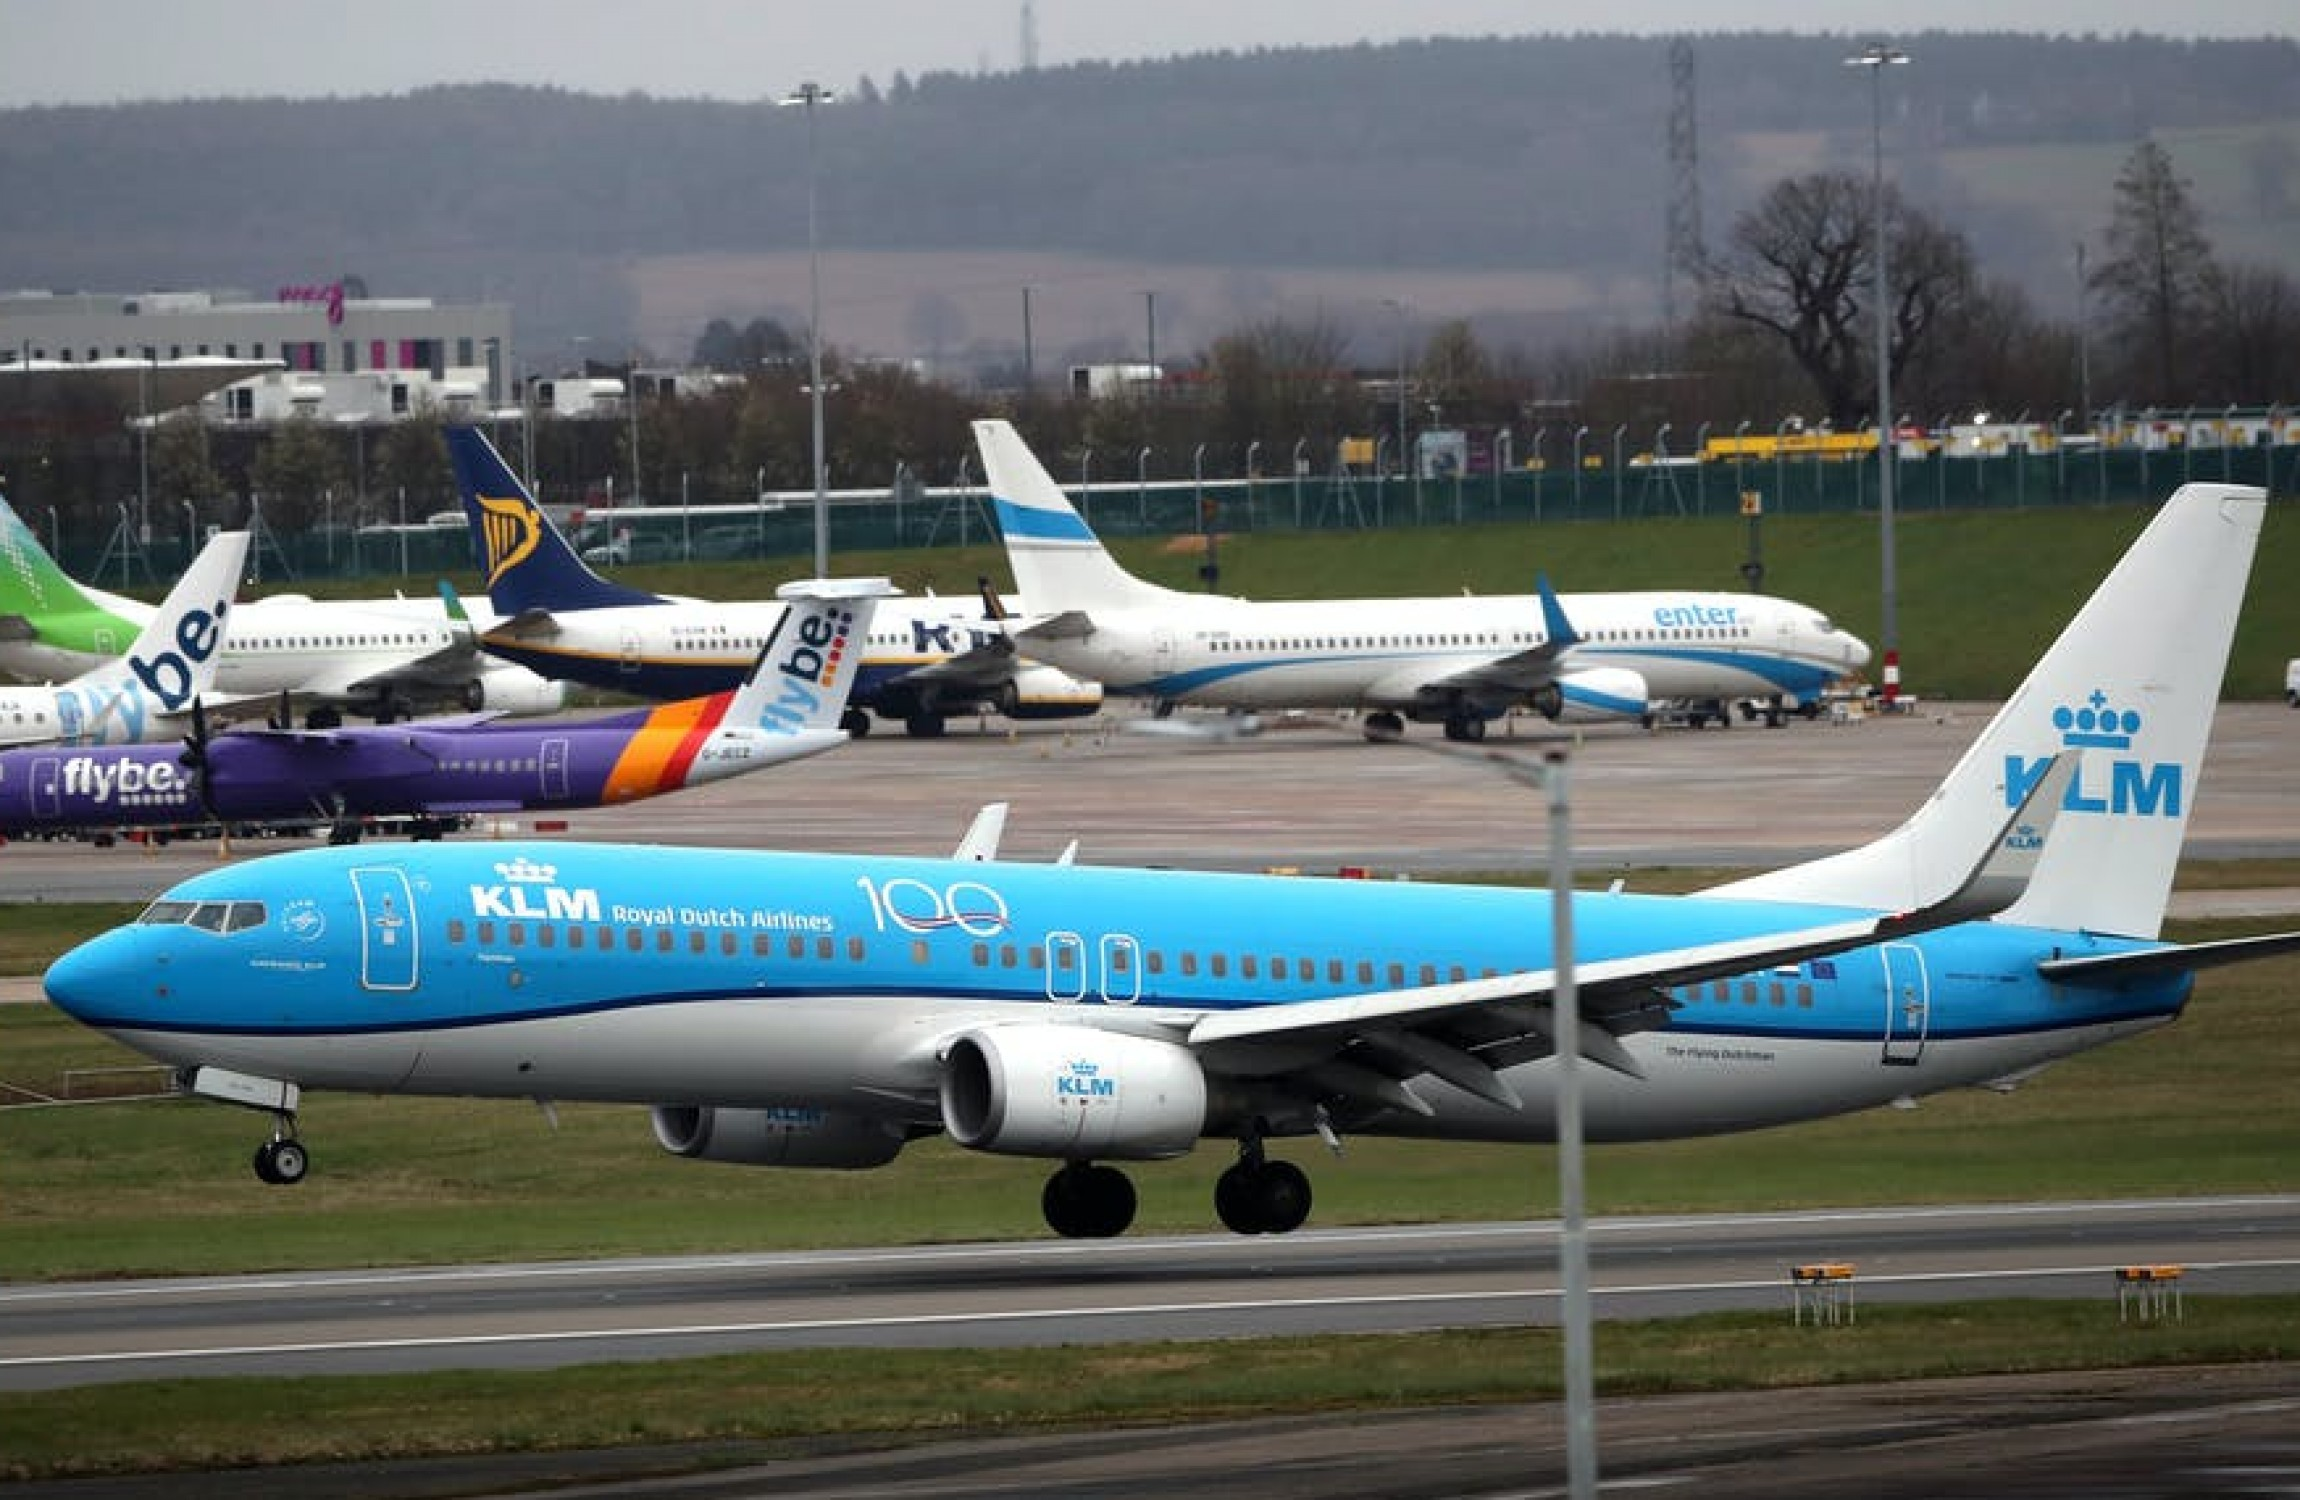 Latest FCDO travel advice as flights cancelled